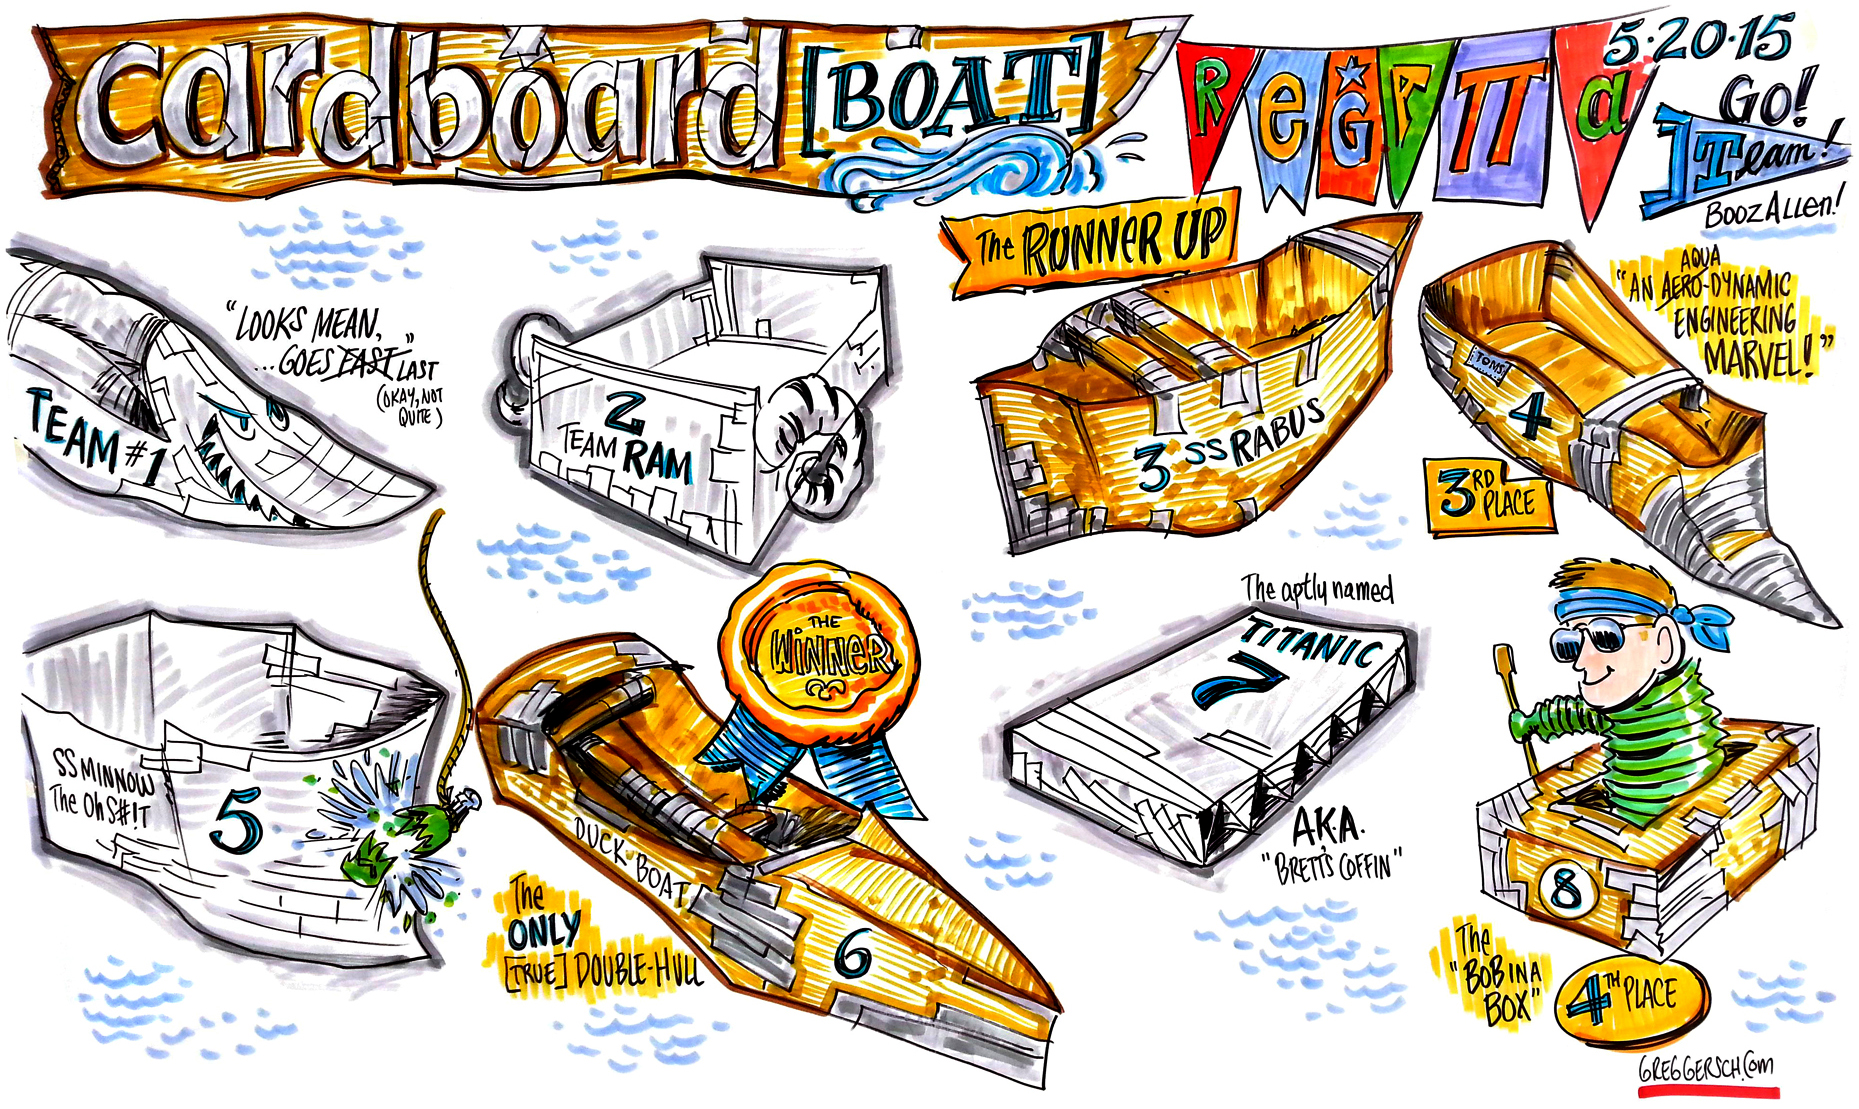 Graphic Recording - Private Event: Commemorating a cardboard boat race, Booz Allen Hamilton - 4' x 7.5'